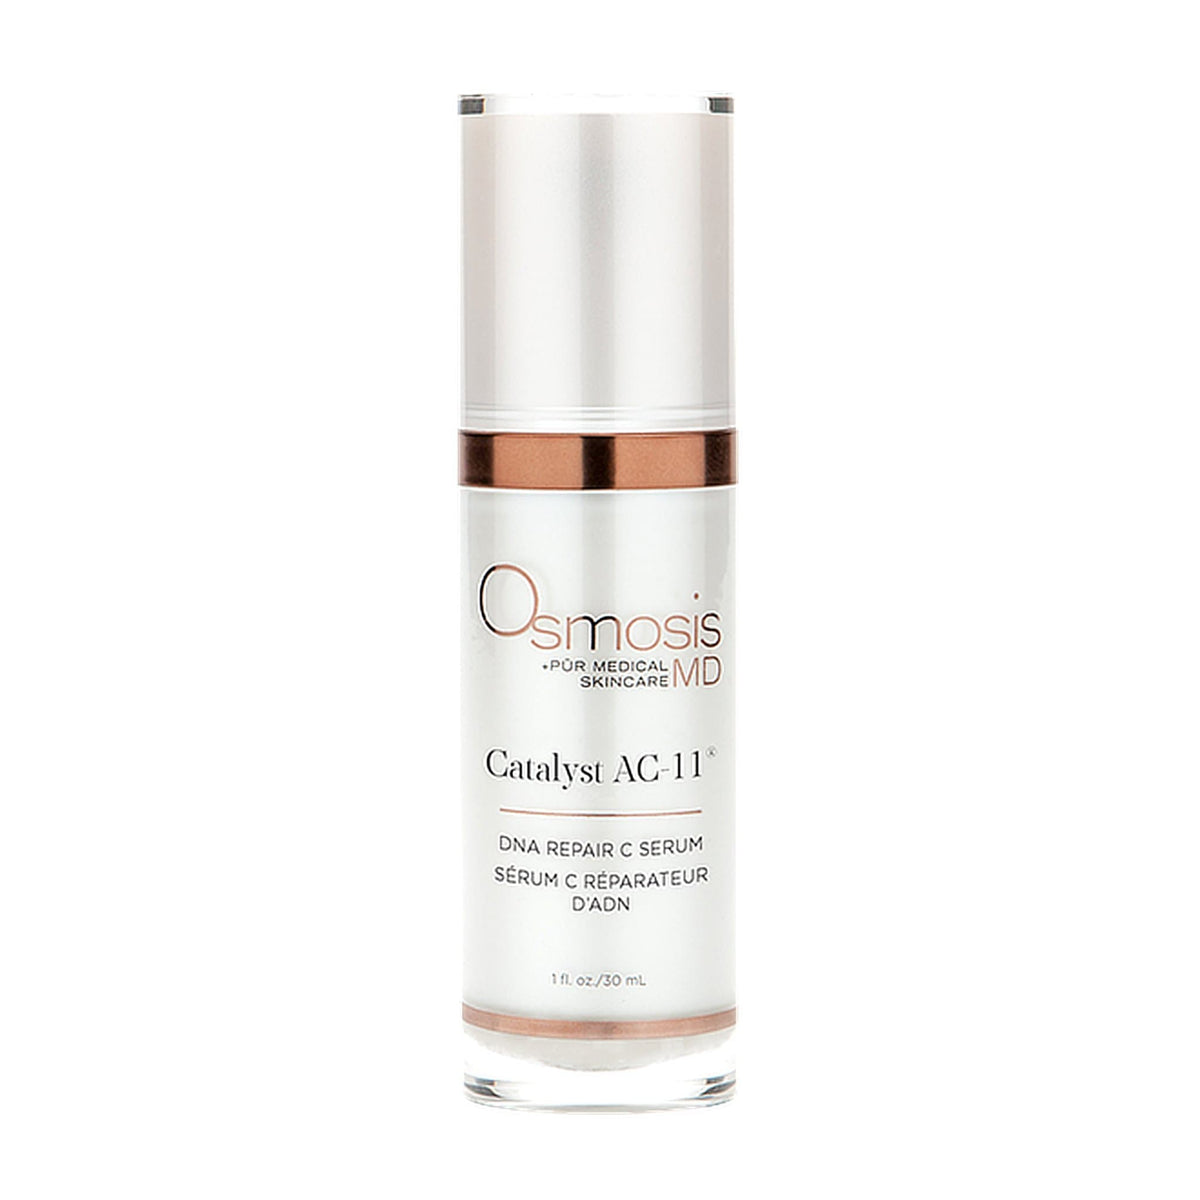 OSMOSIS MD - CATALYST AC-11®